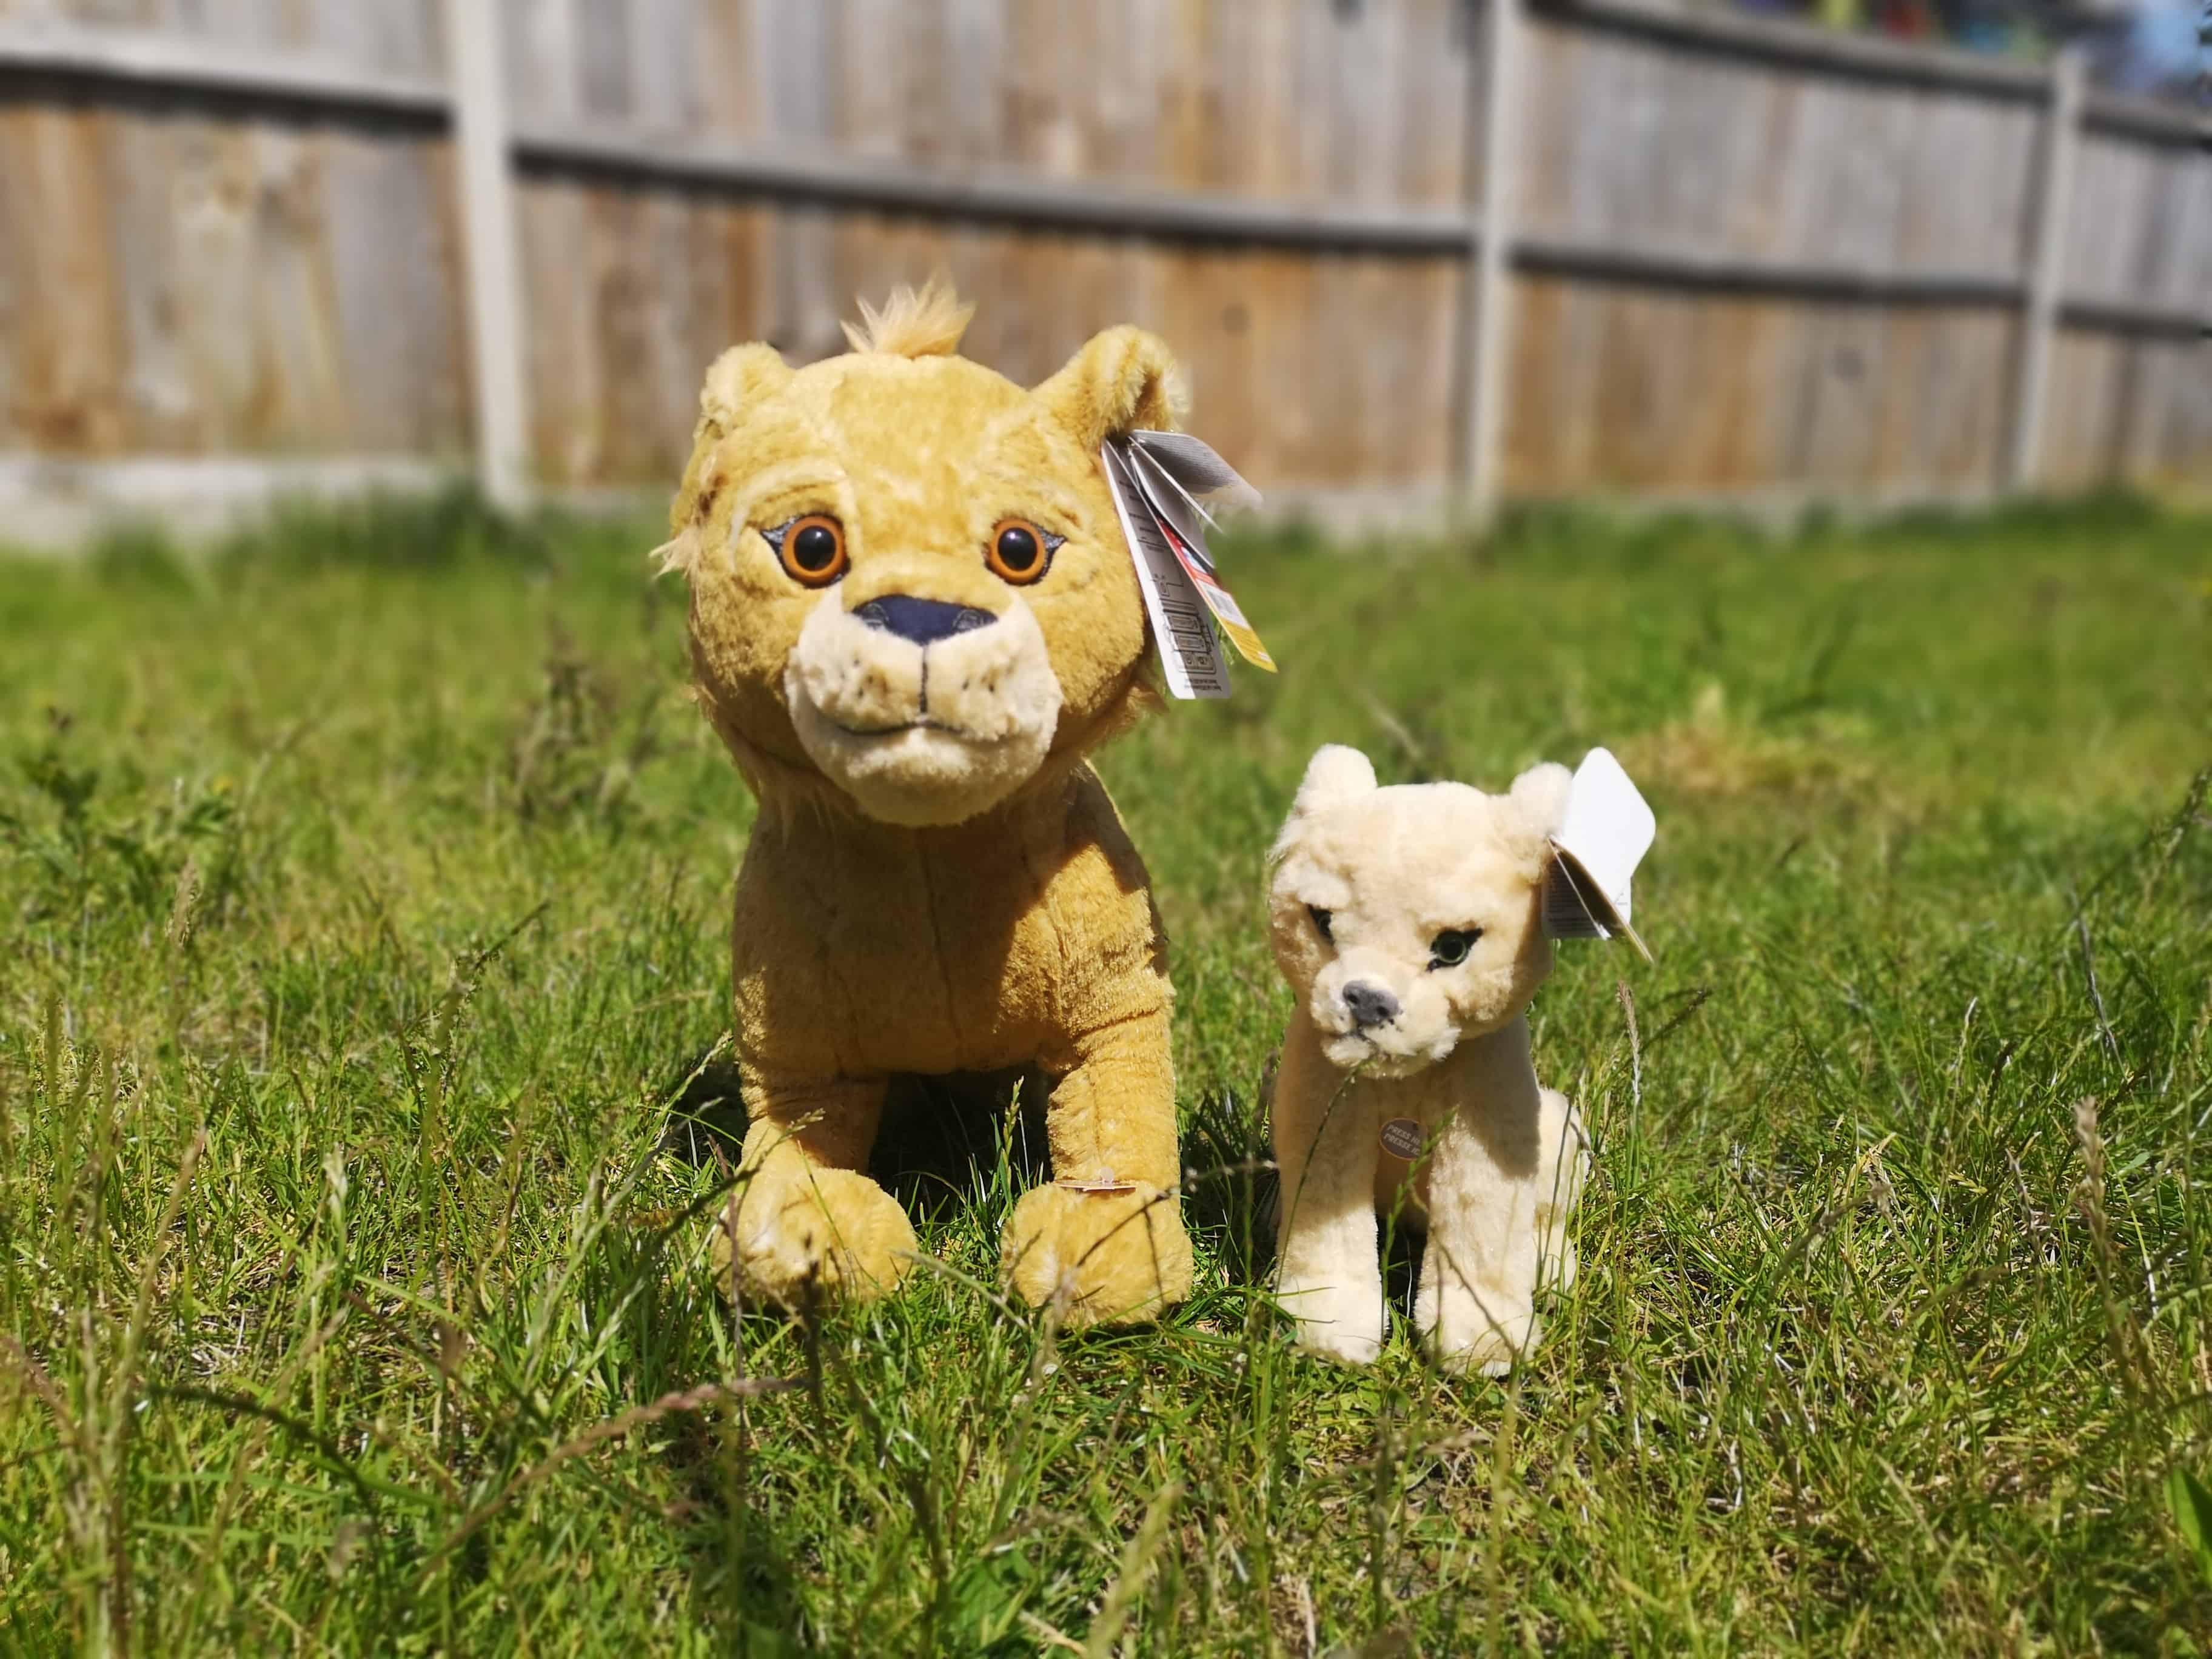 Disney's The Lion King Live Action Plush Review